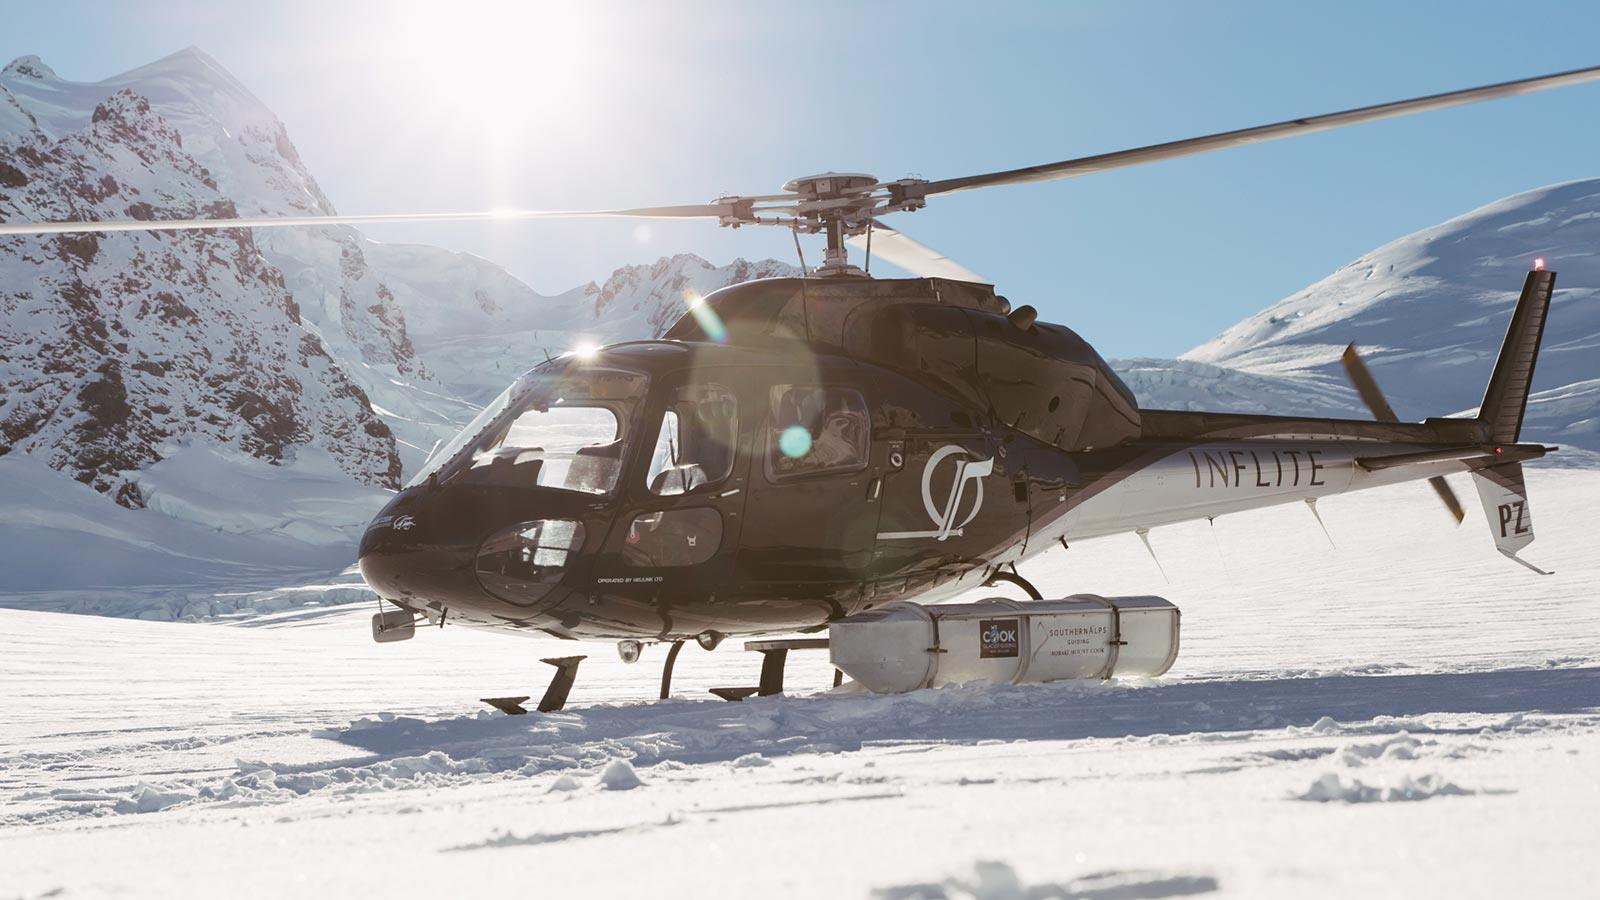 Inflite Is New Zealands Largest Private Air Solution Company Aircraft Charter Services Management Helicopters Our Fleet